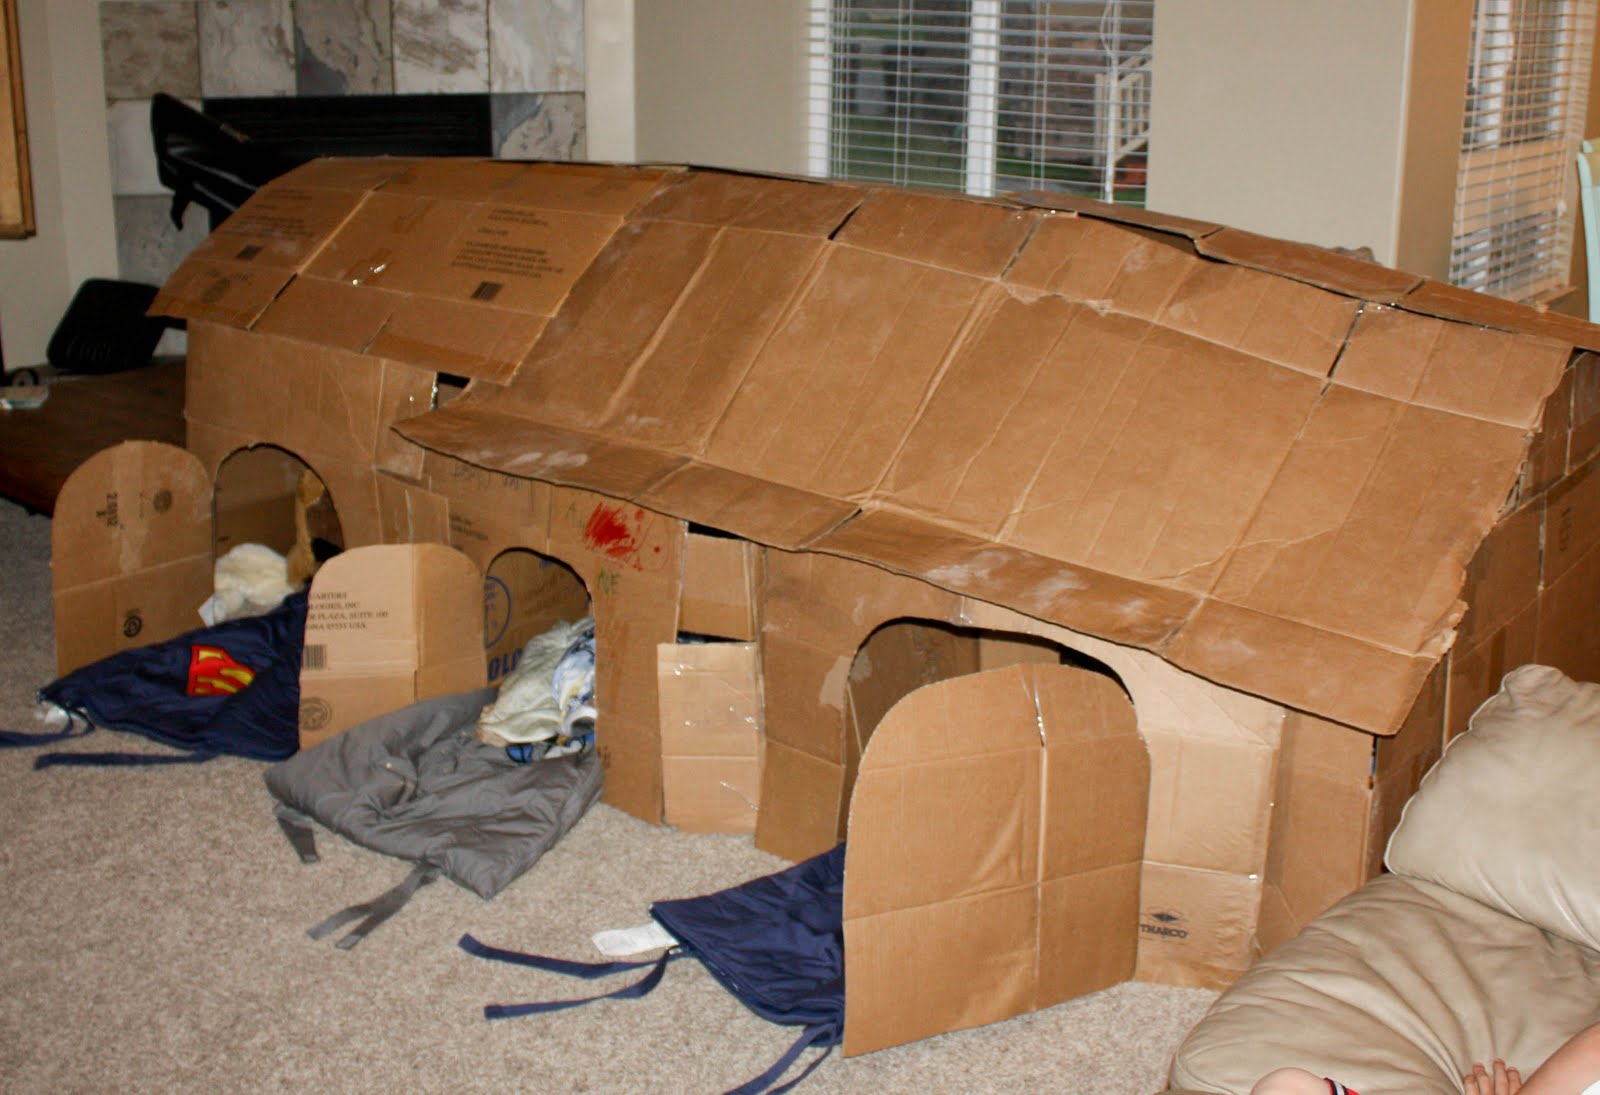 how to build awesome outdoor forts with kids